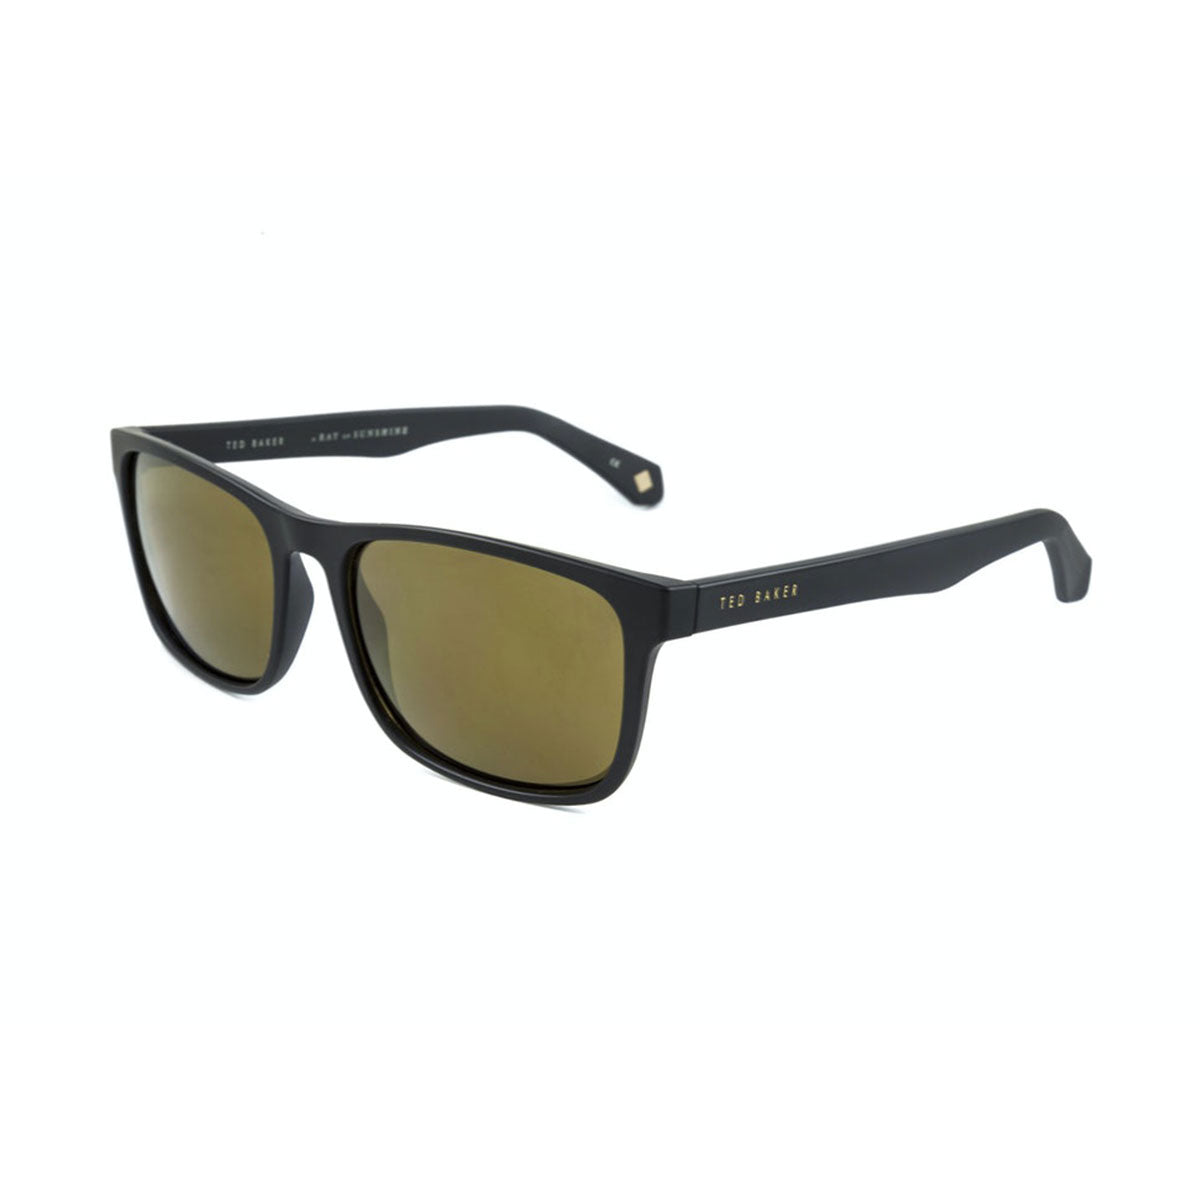 Ted Baker Men's Sunglasses TB1493 Lowe 001